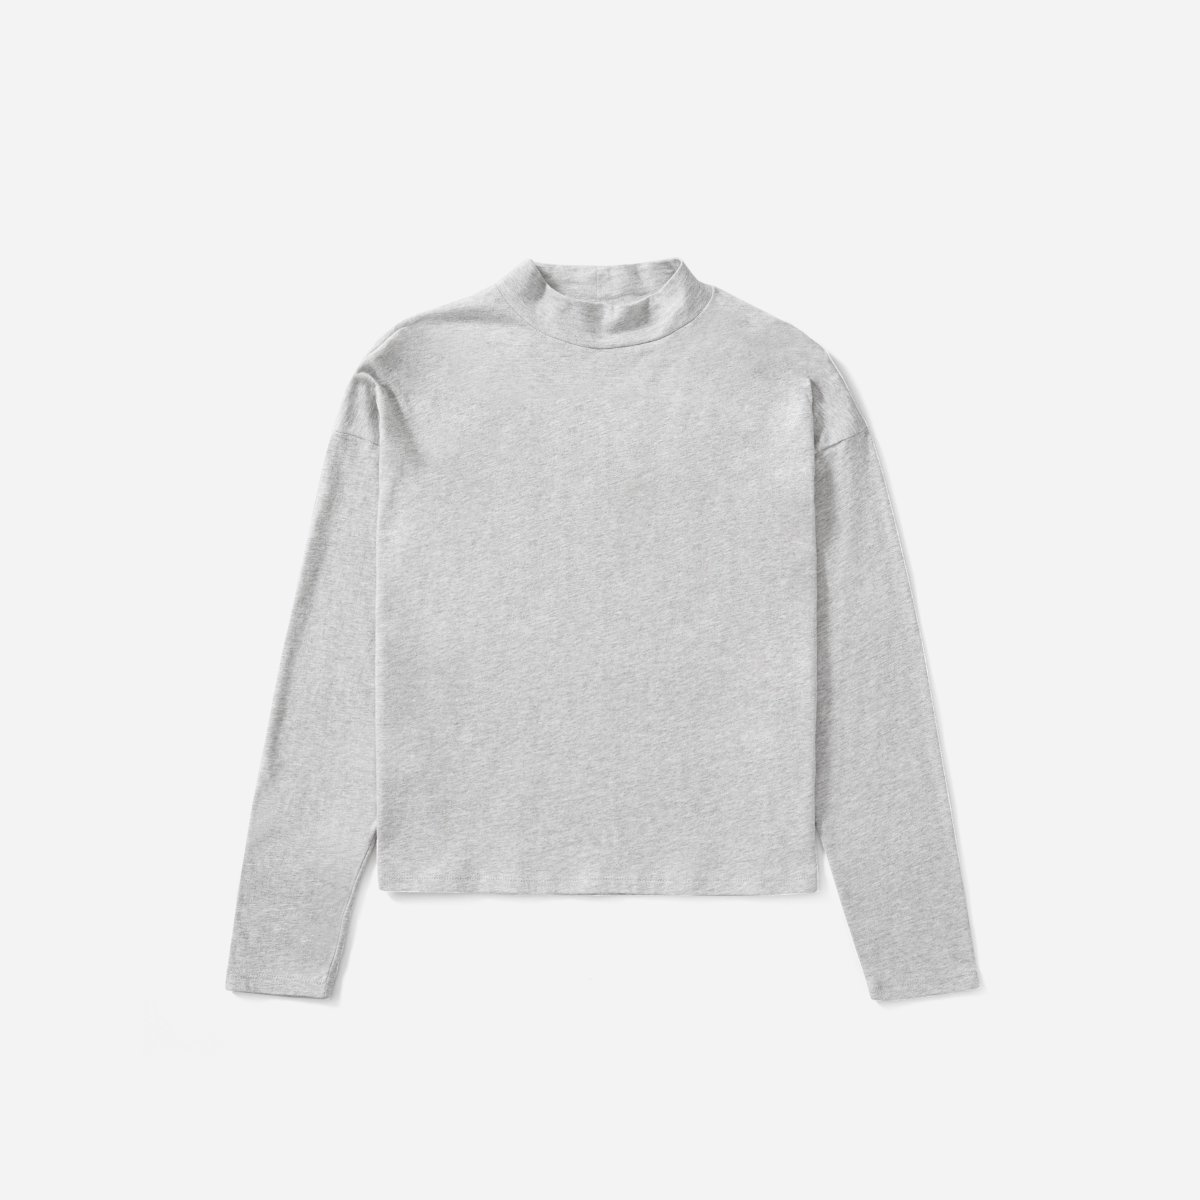 The Square Mockneck Tee - Size Small